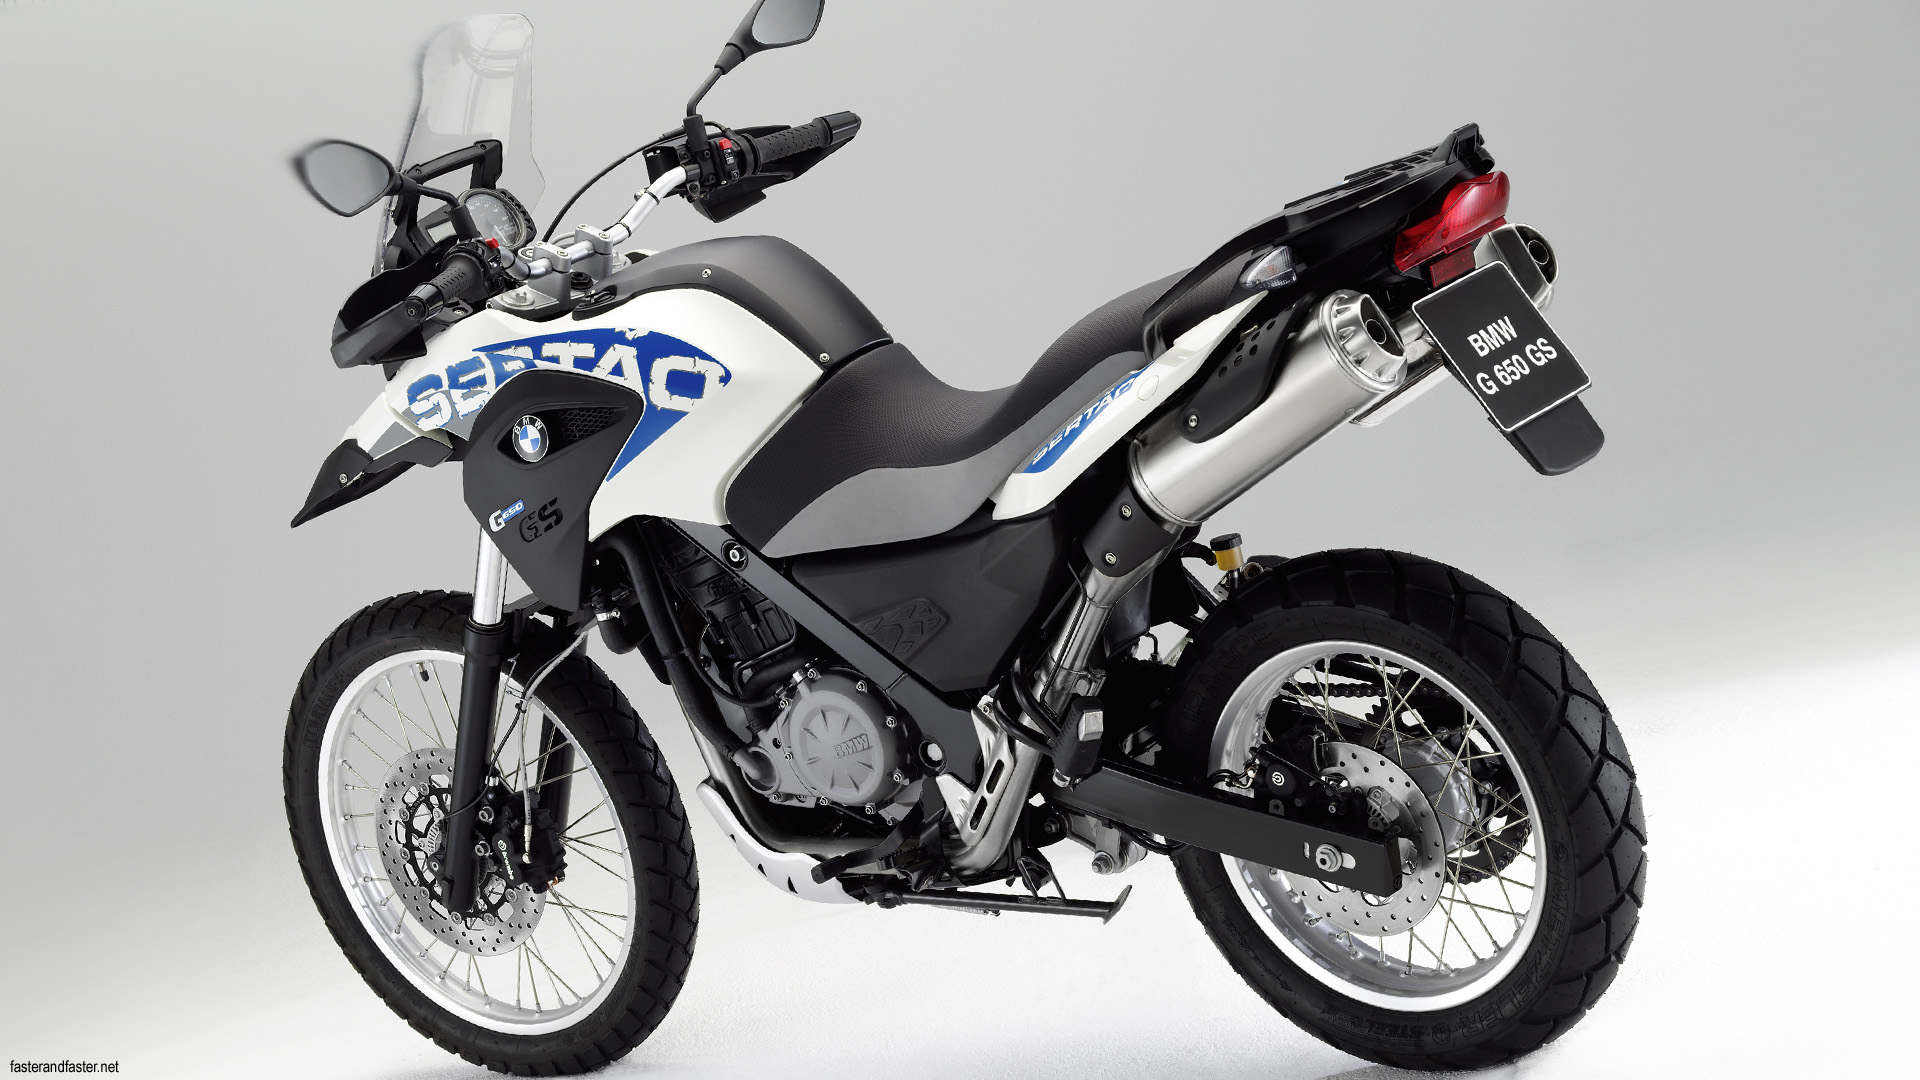 2012 Bmw G650gs Sertao Now This Looks Like A Fun Bike To